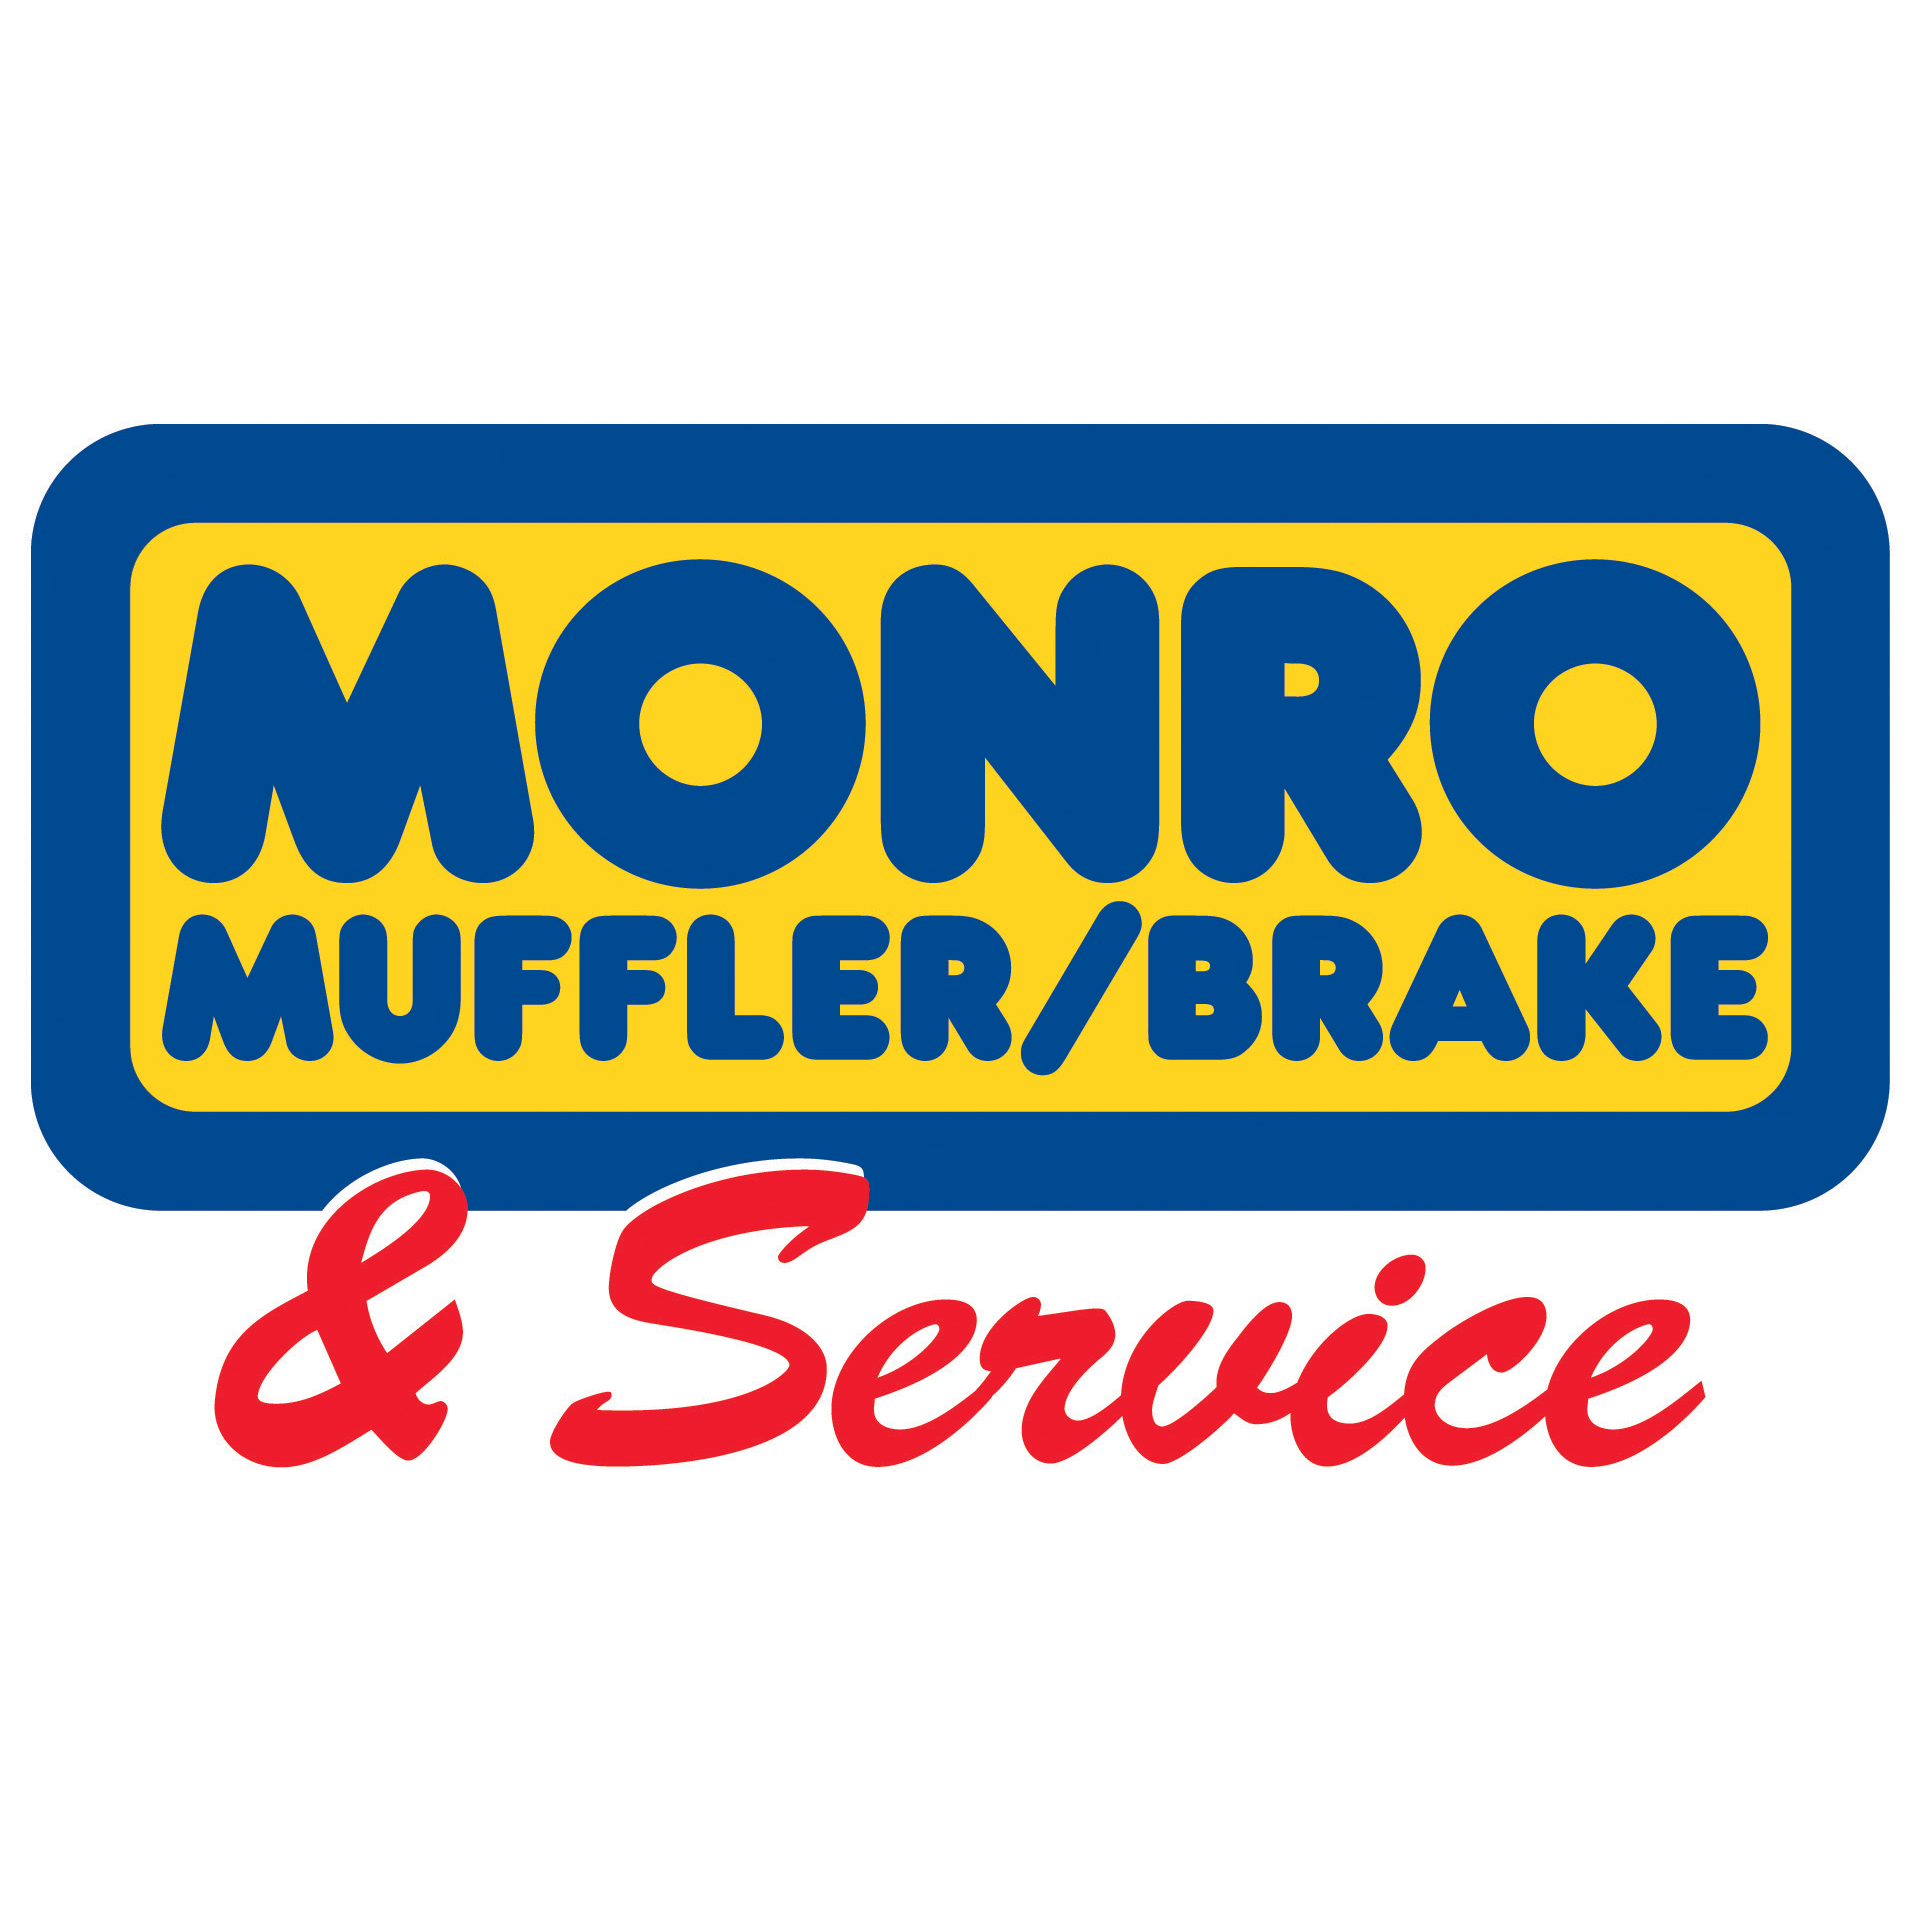 Monro Muffler Brake & Service - Towanda, PA - General Auto Repair & Service